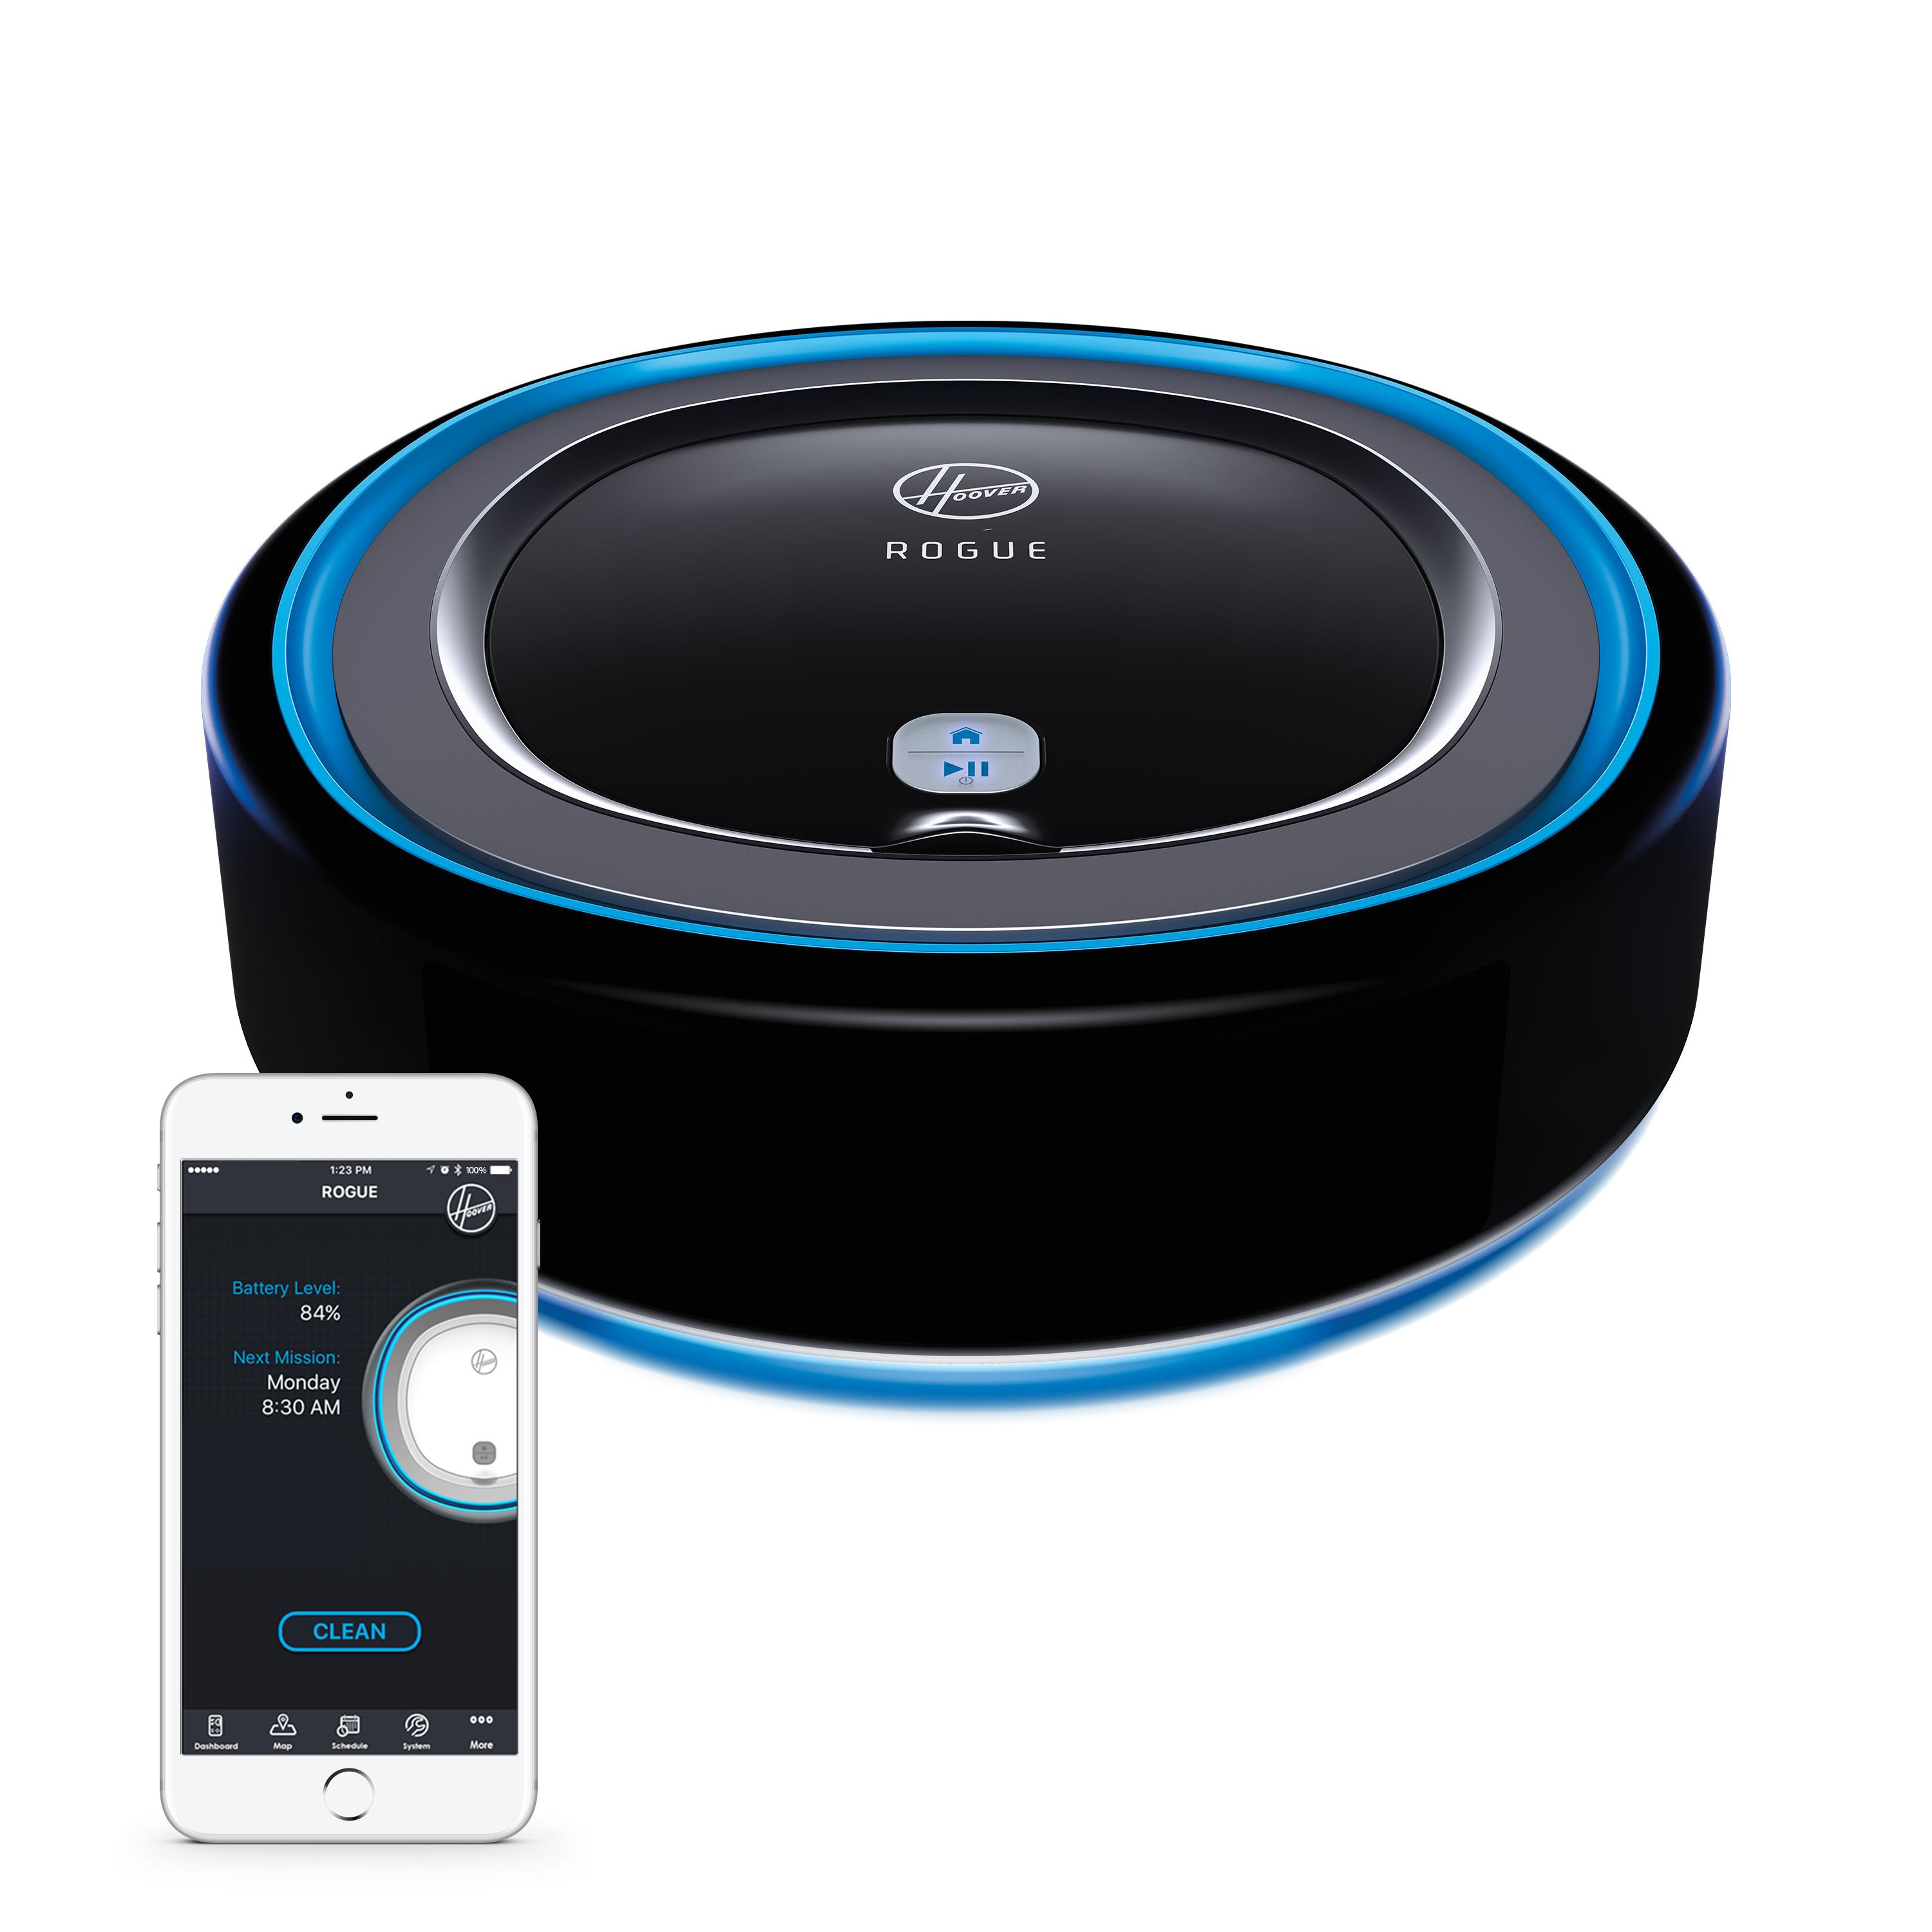 new hoover rogue robot vacuum latest sensory smart technology locodor. Black Bedroom Furniture Sets. Home Design Ideas